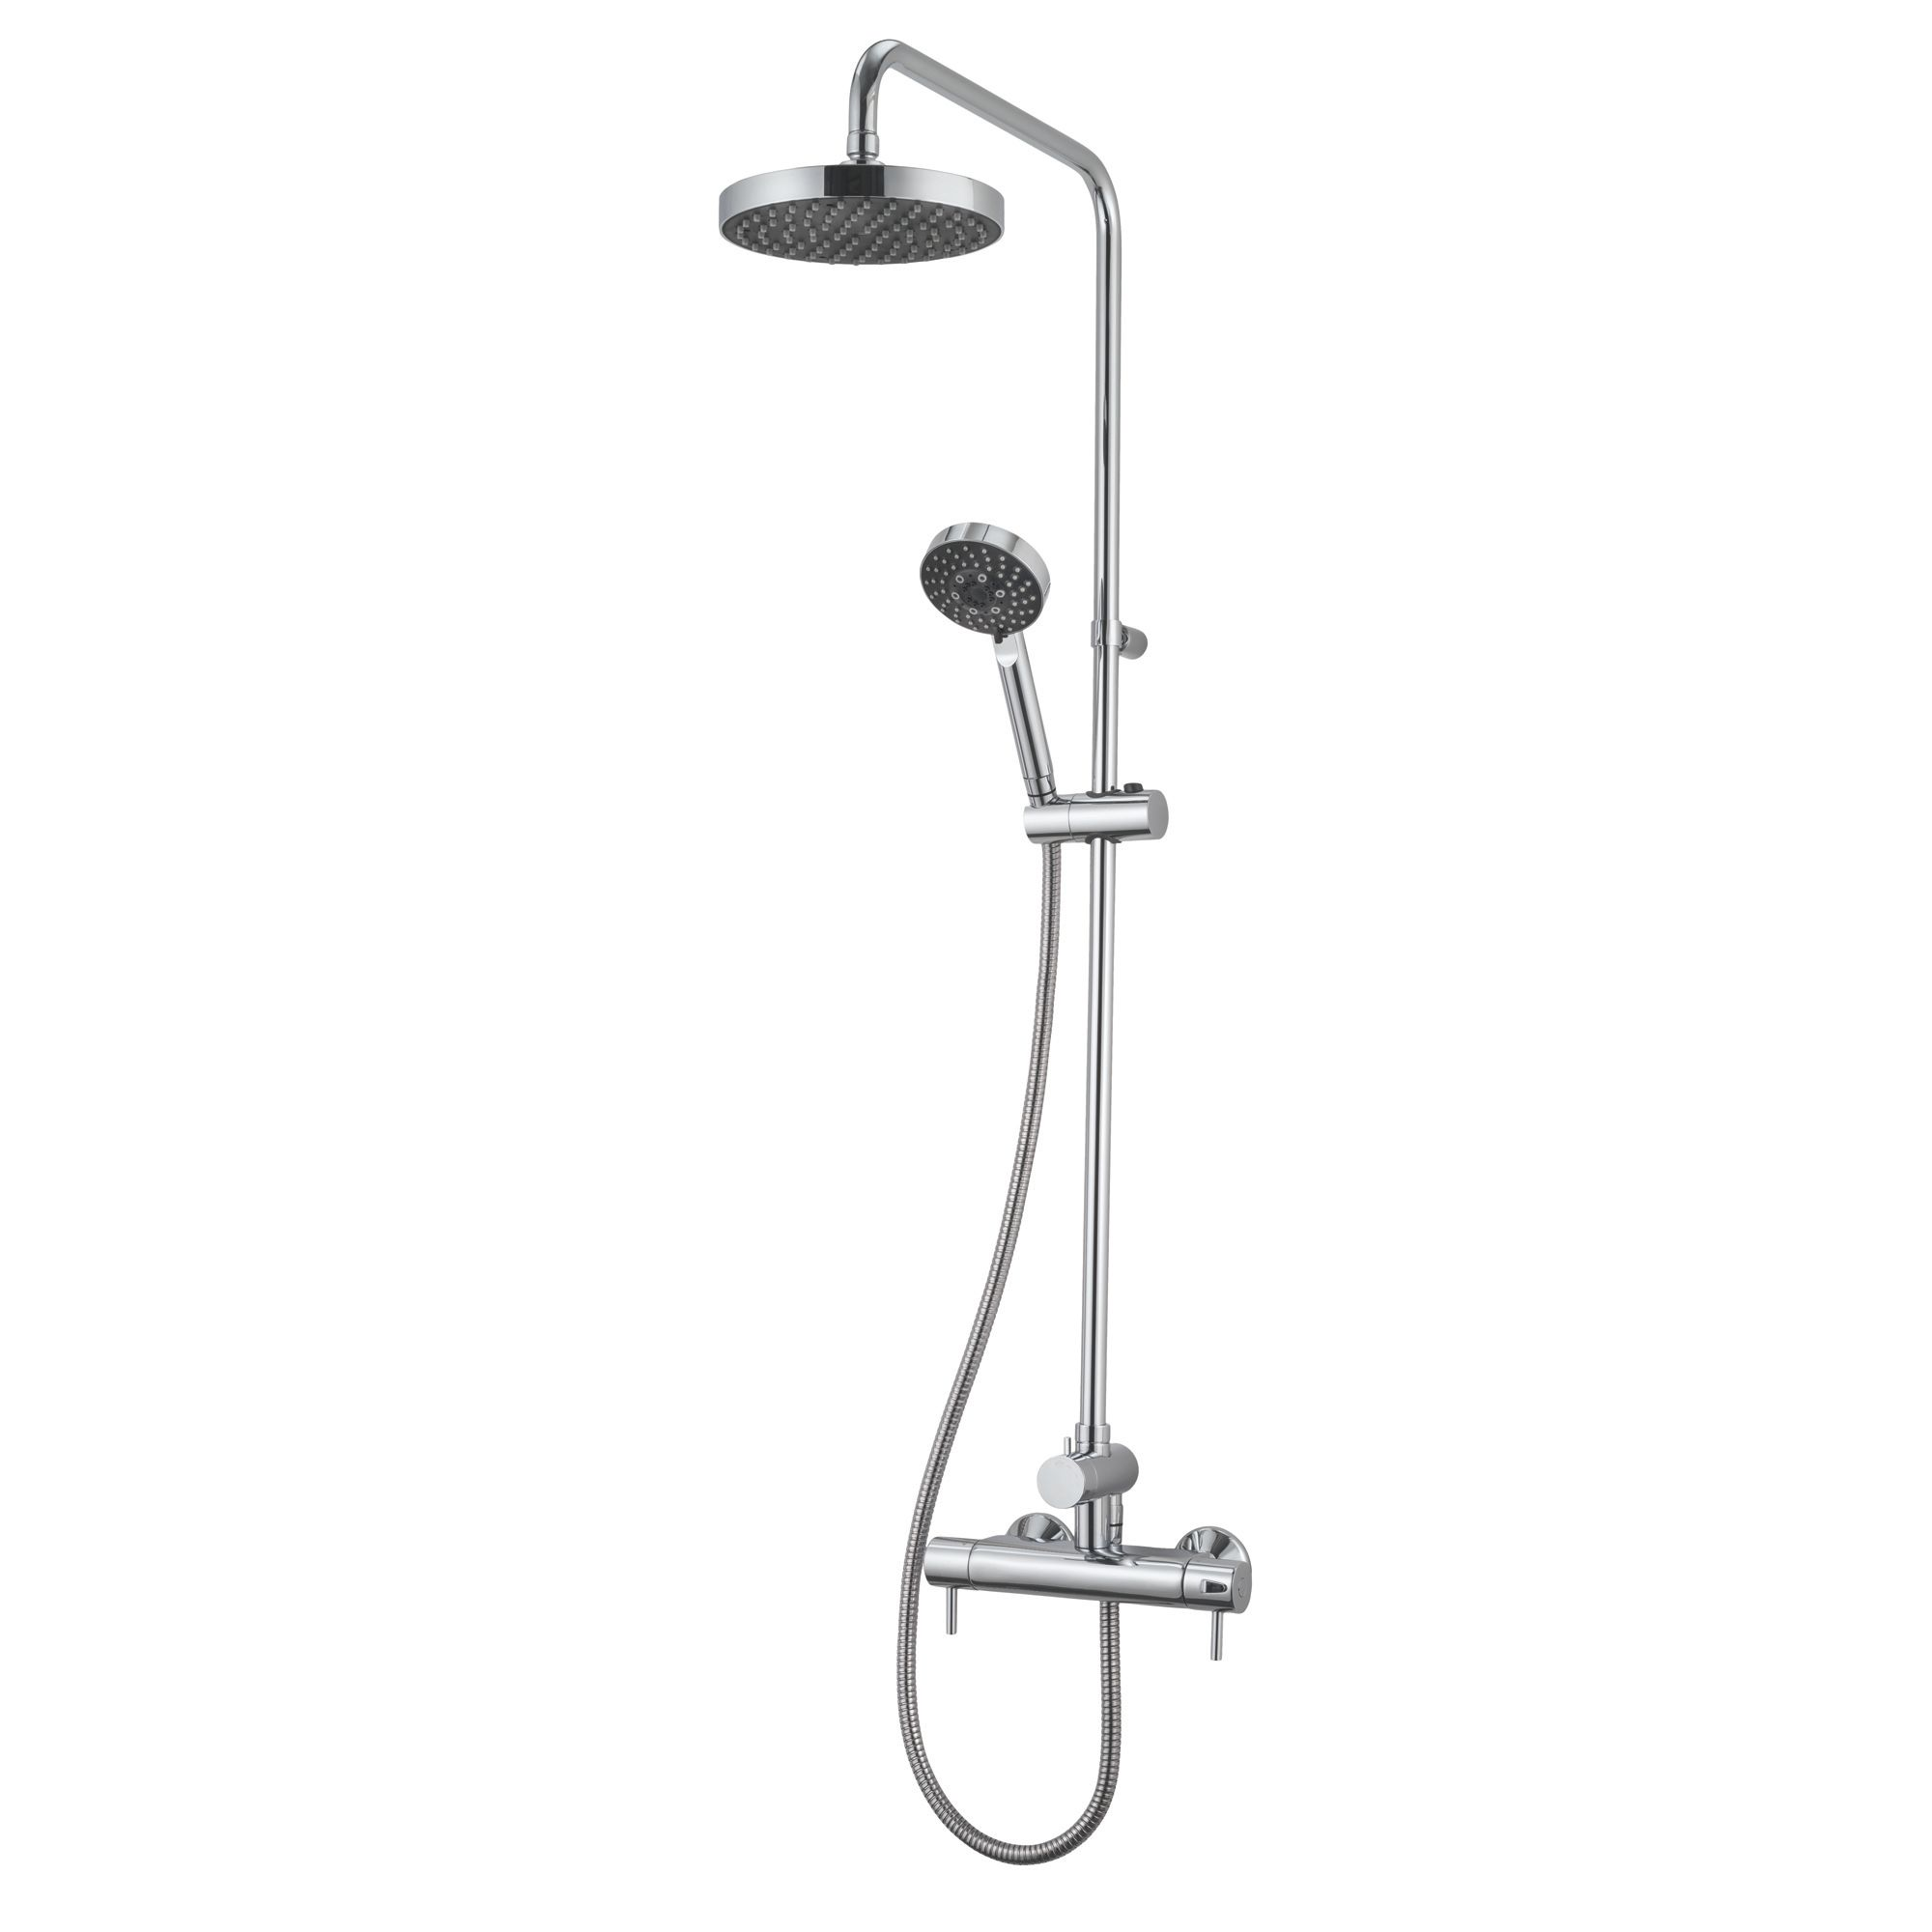 Triton Carnival Chrome Thermostatic Bar Mixer Shower With